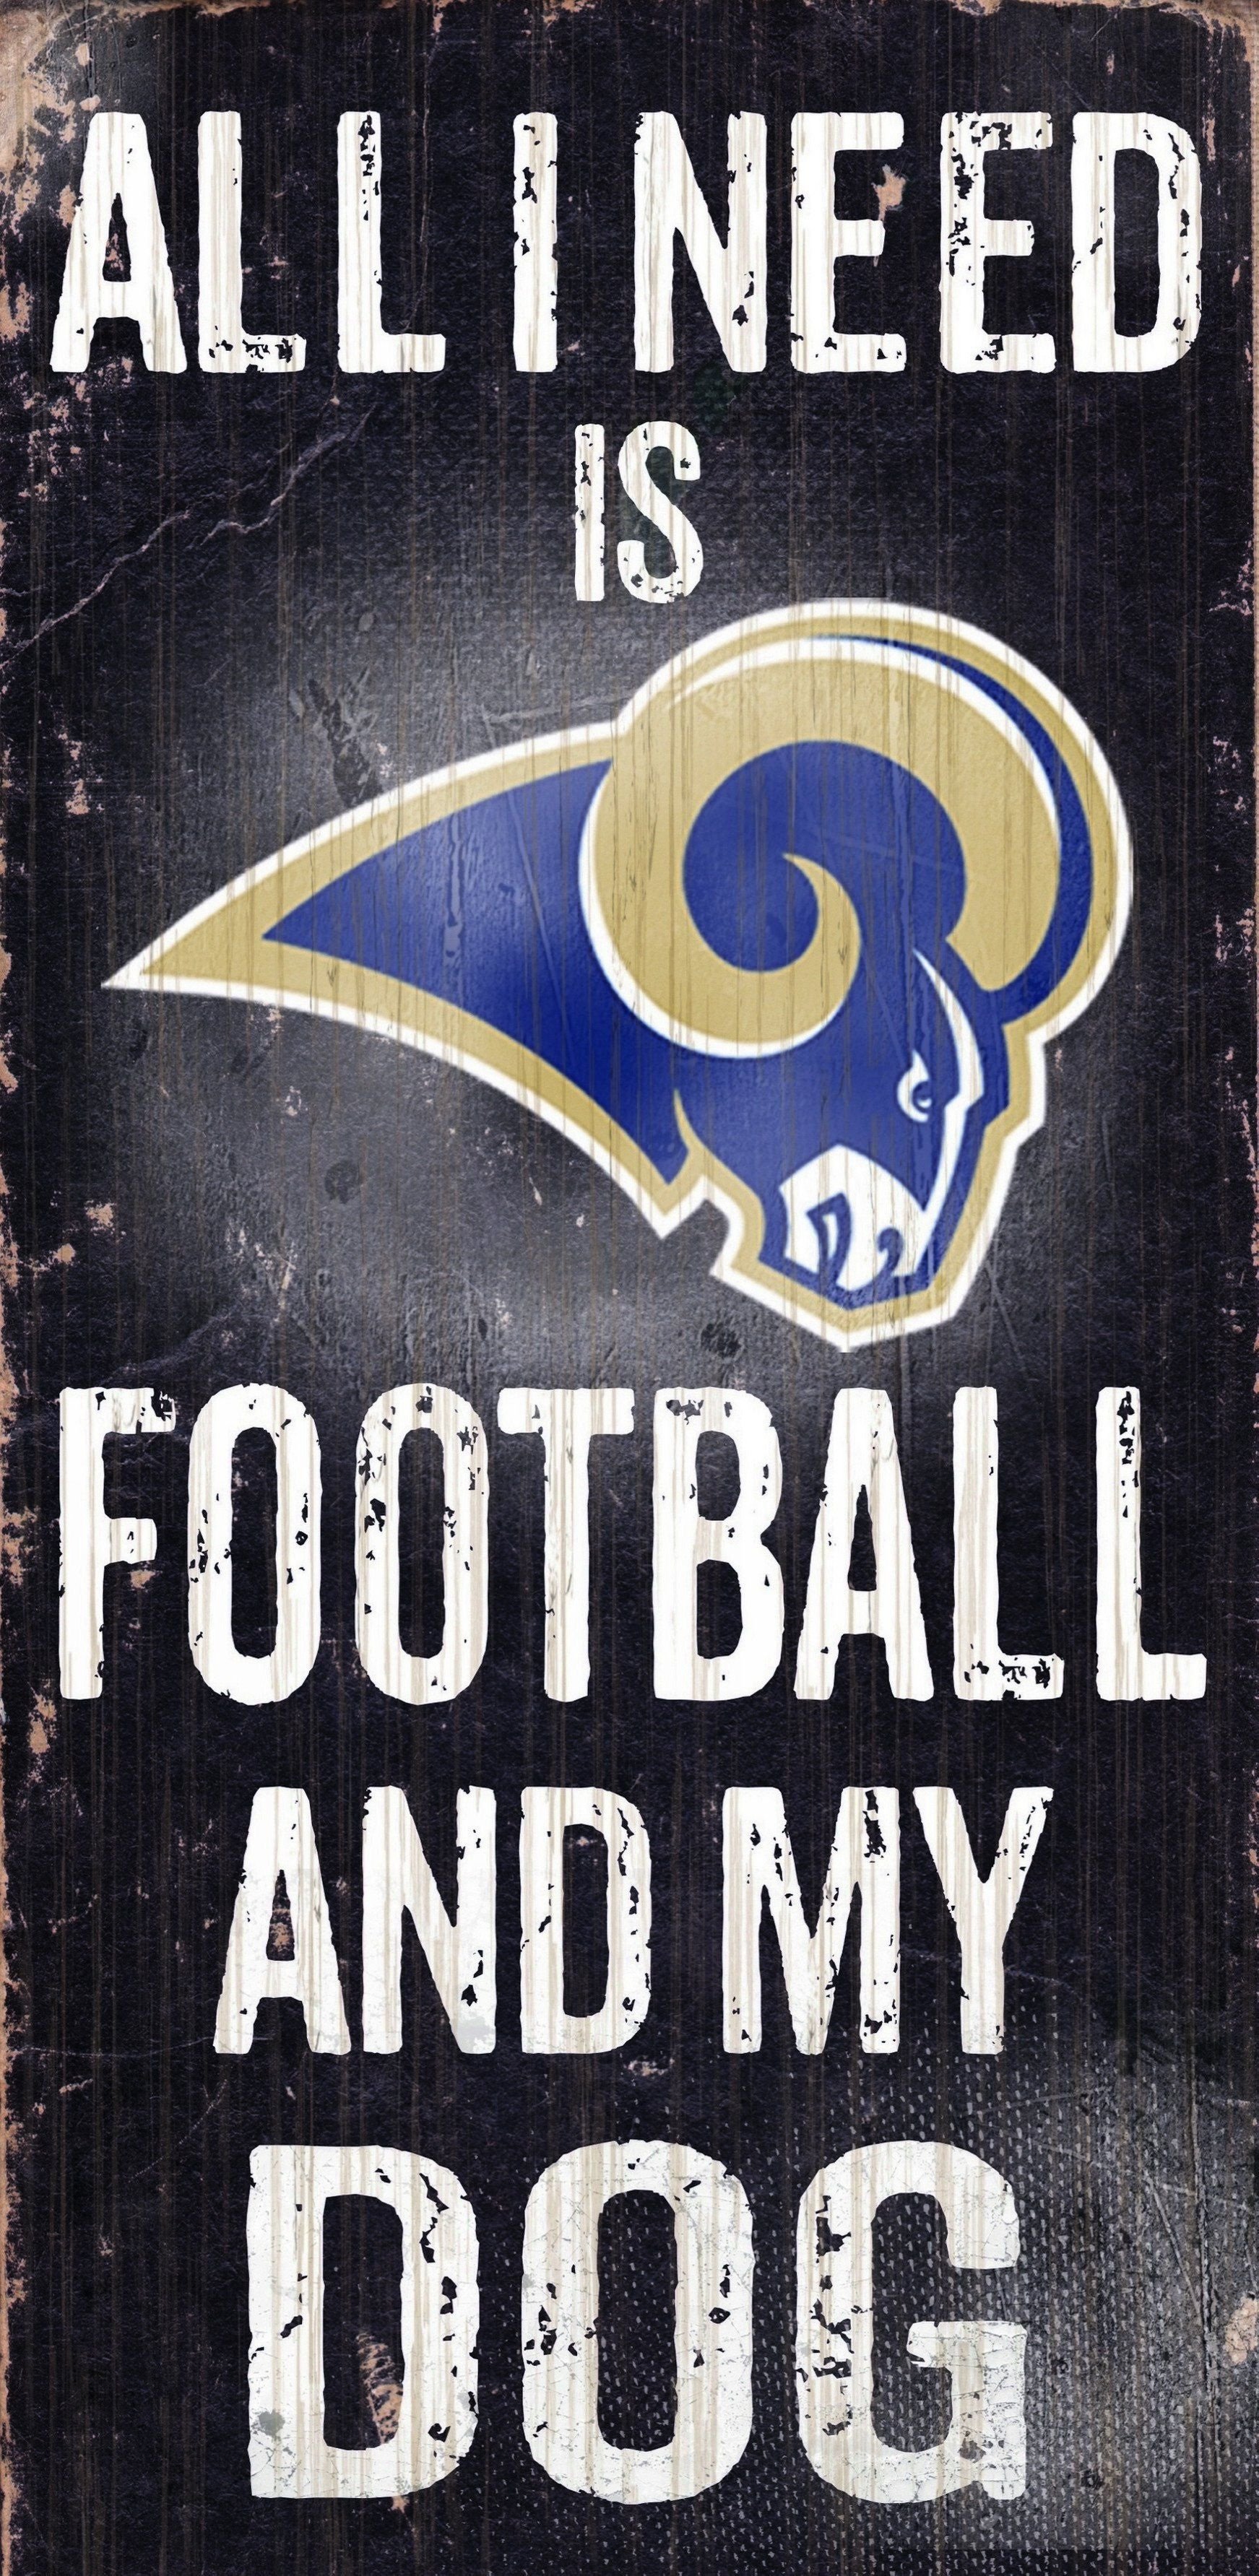 Los Angeles Rams Wood Sign Football And Dog 6x12 In 2020 Los Angeles Rams Rams Football Dog Signs